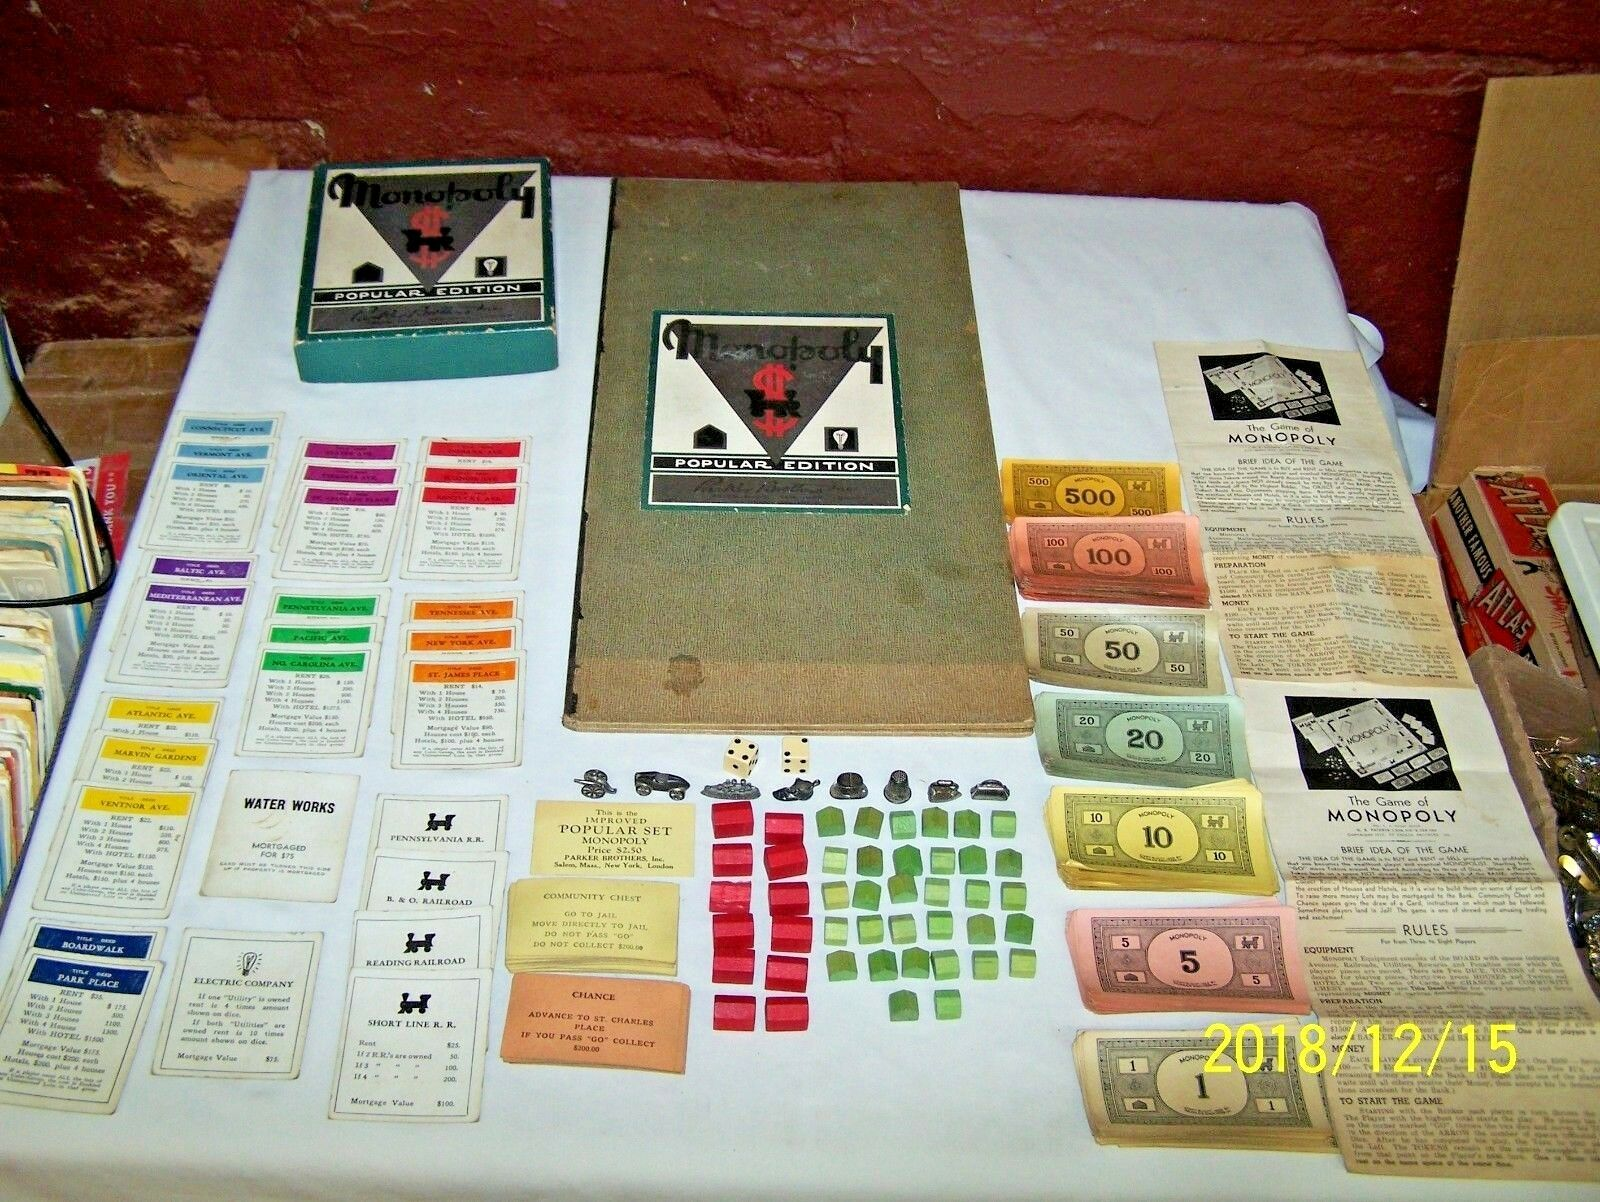 1935 - 1936  NUMBER 8 MONOPOLY GAME - POPULAR EDITION - DUAL PATENT - NO RESERVE